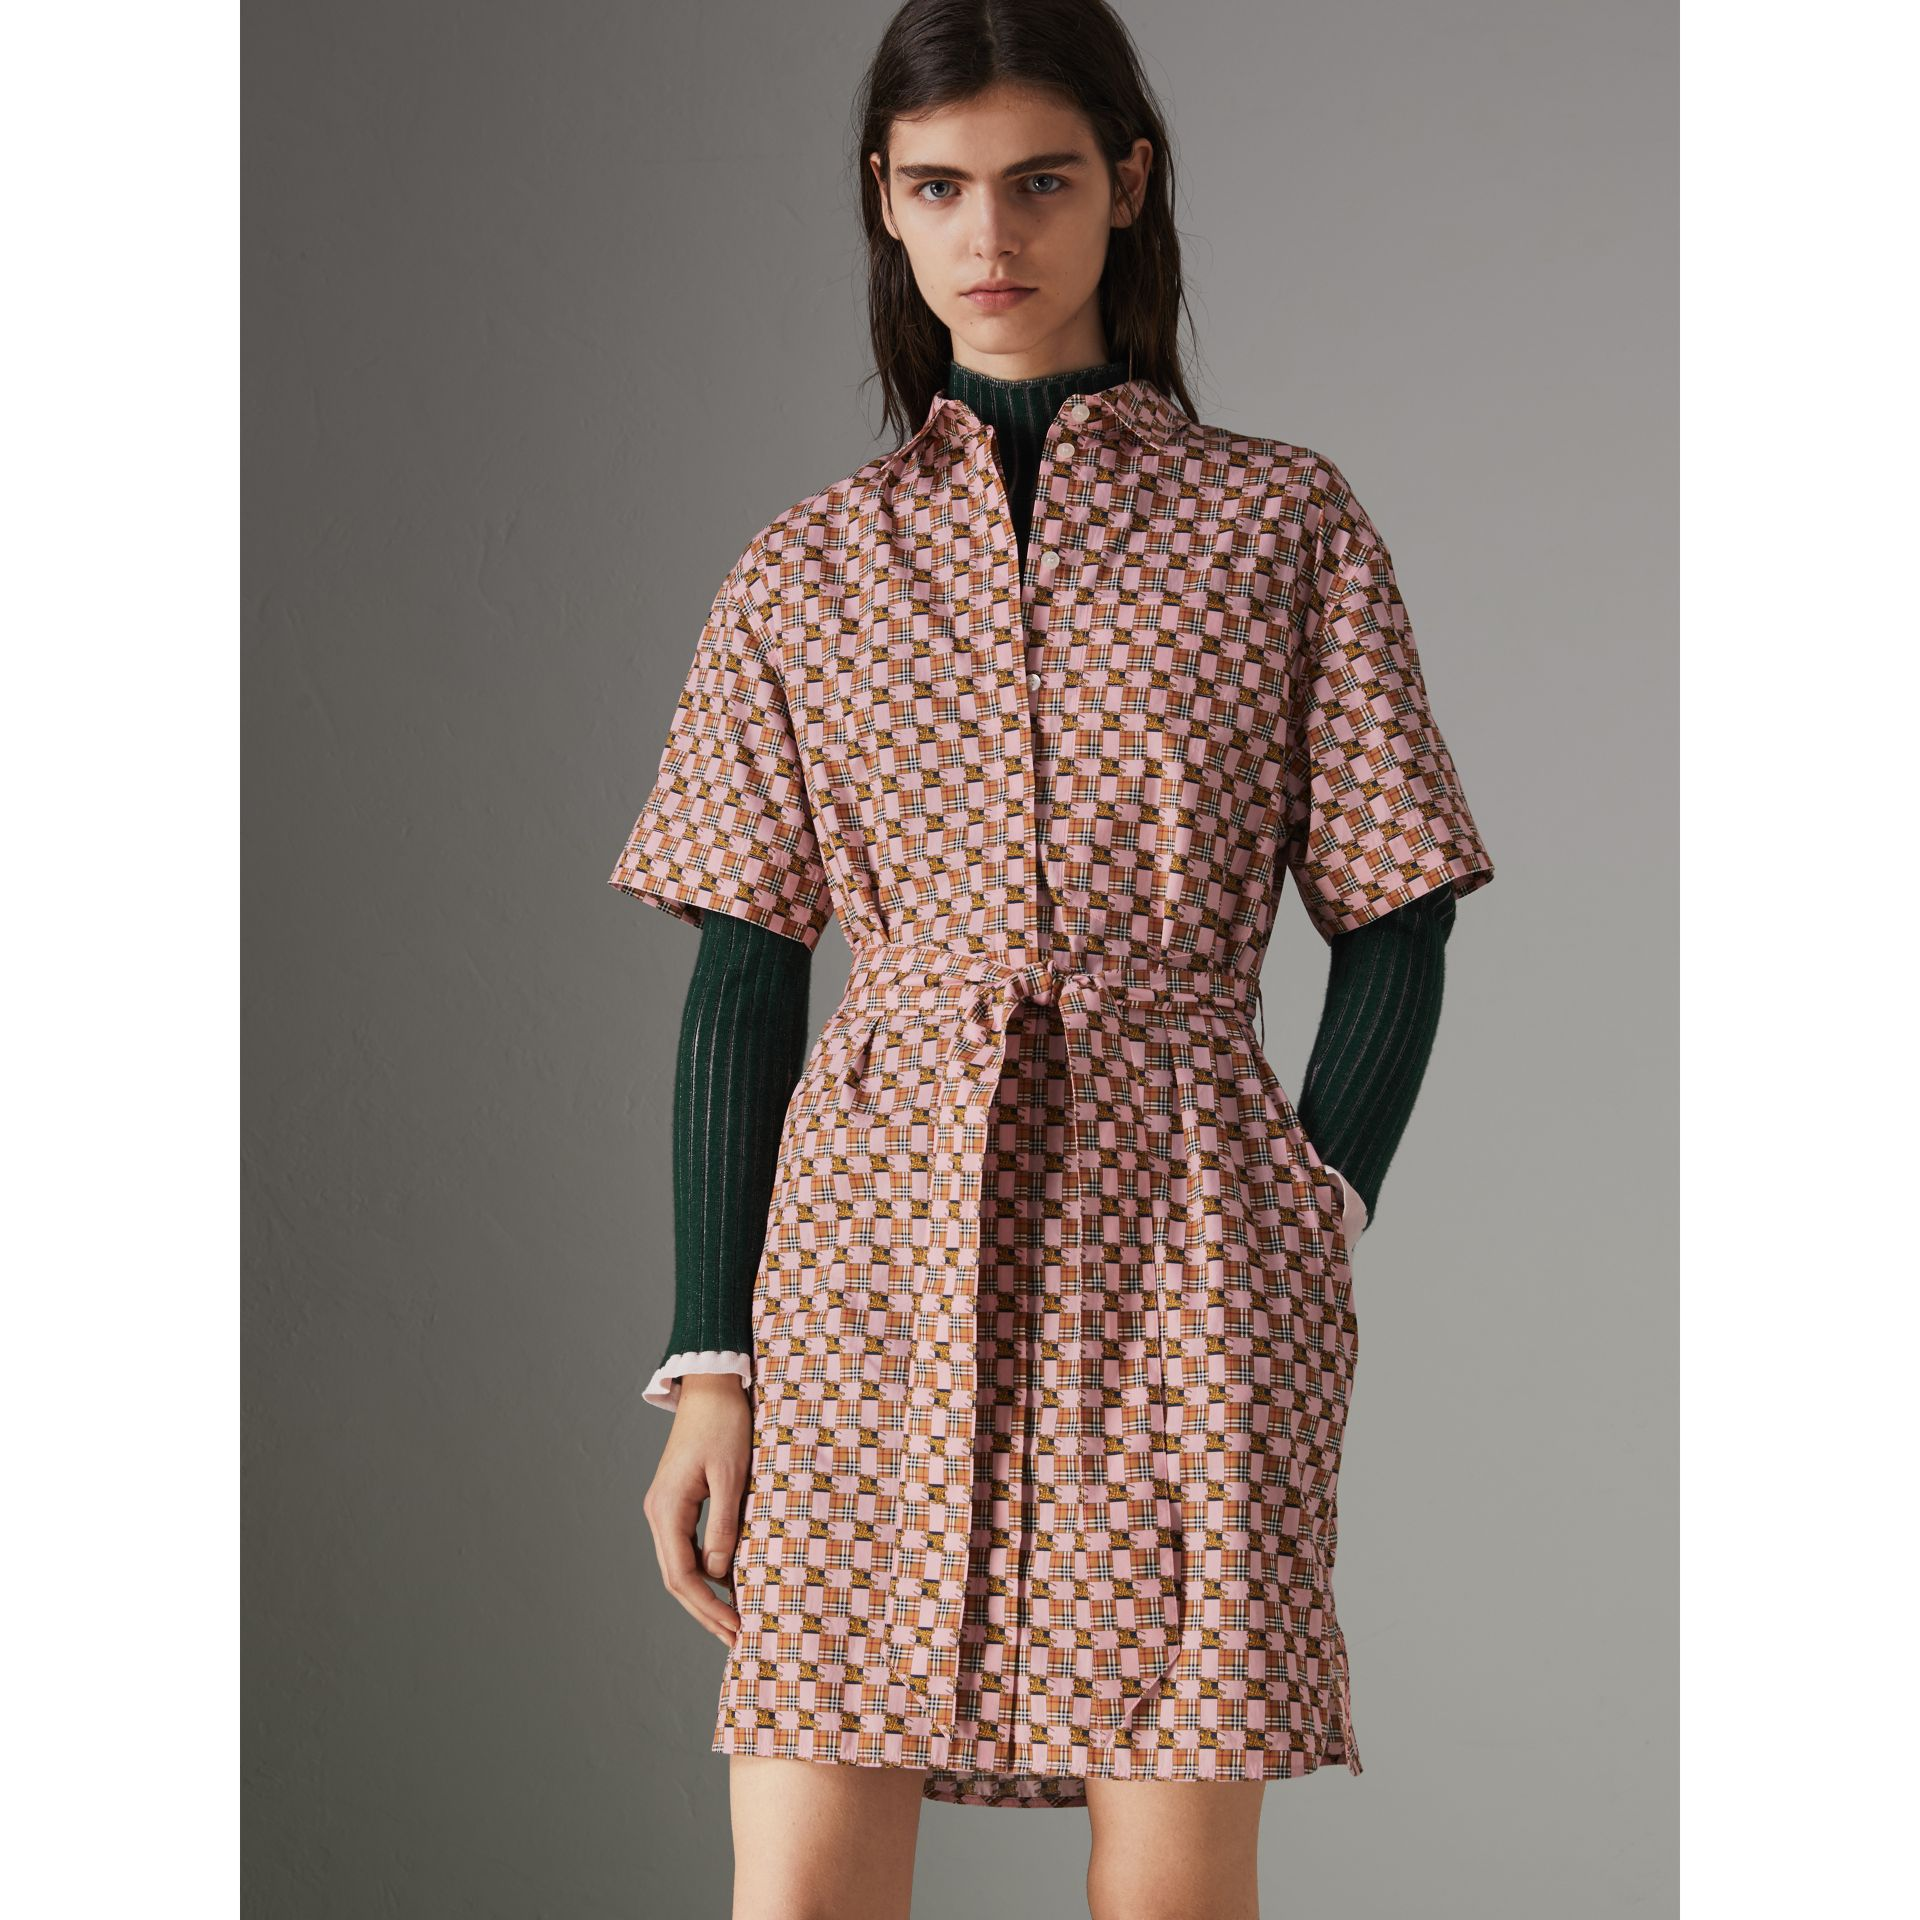 Tiled Archive Print Cotton Shirt Dress in Pink - Women | Burberry United Kingdom - gallery image 4